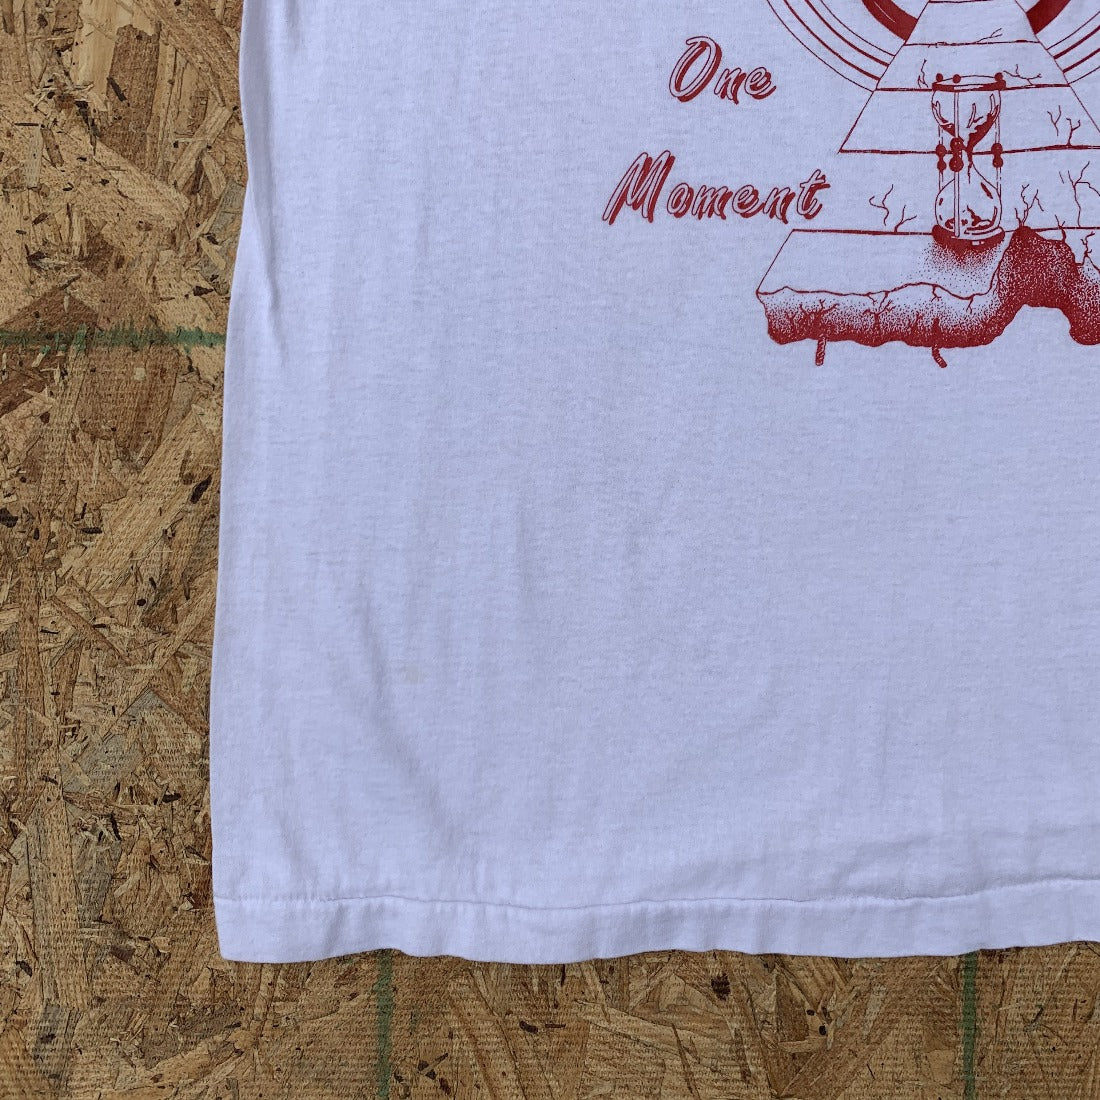 80s Home Made After Prom 89 White 50/50 Tshirt | XL Vintage